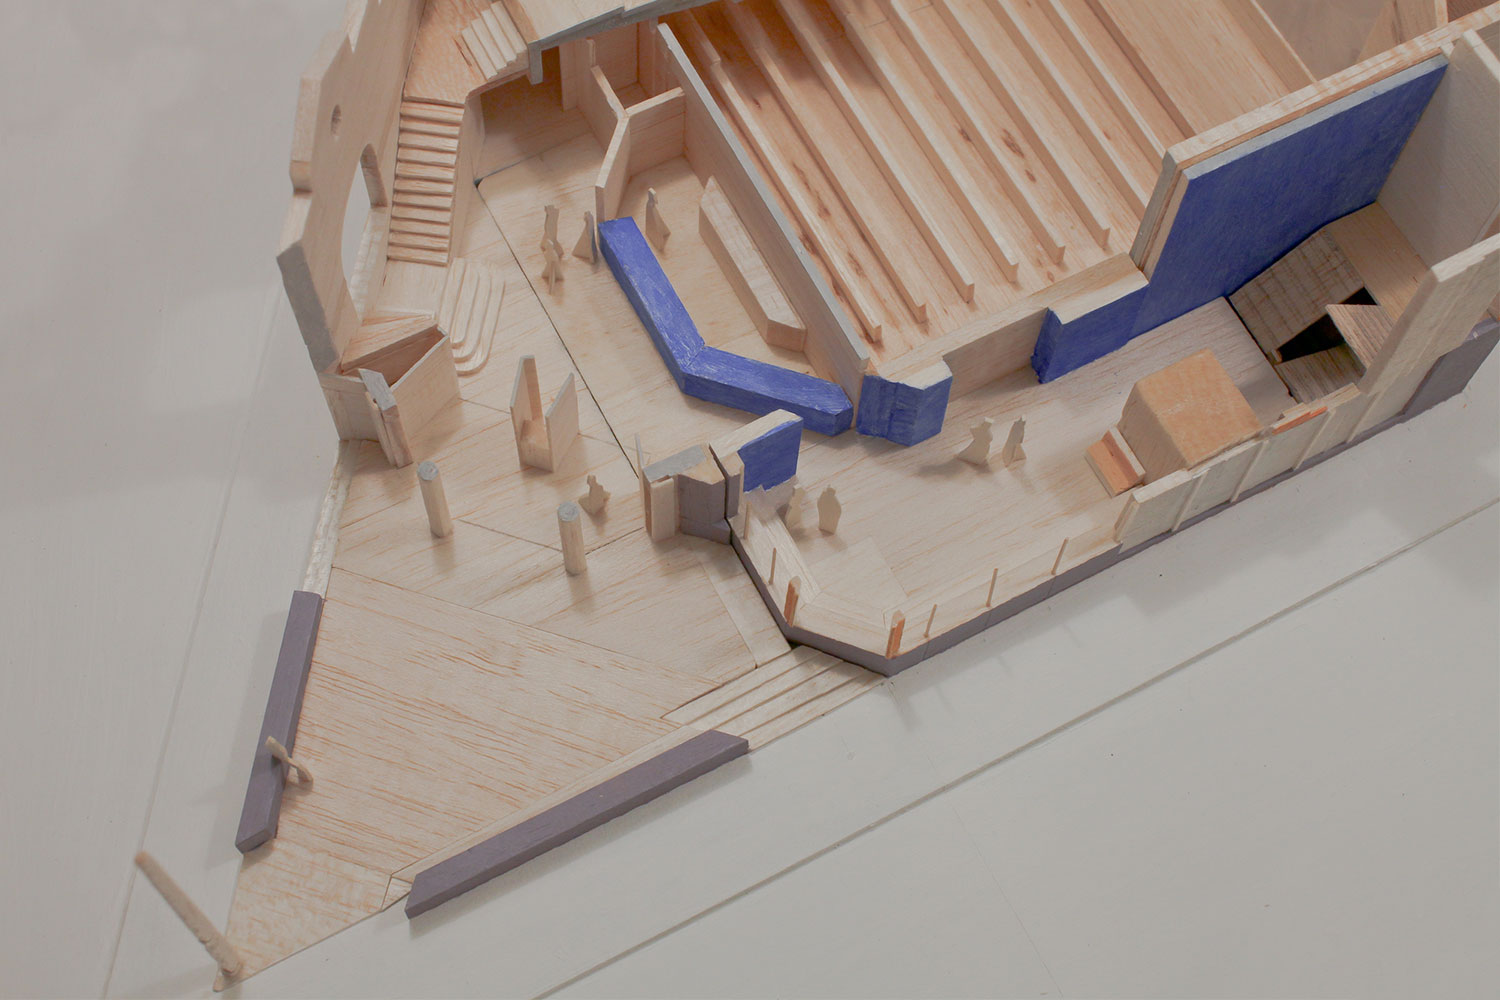 Model showing interior of Hyde Park Picture House HPPH